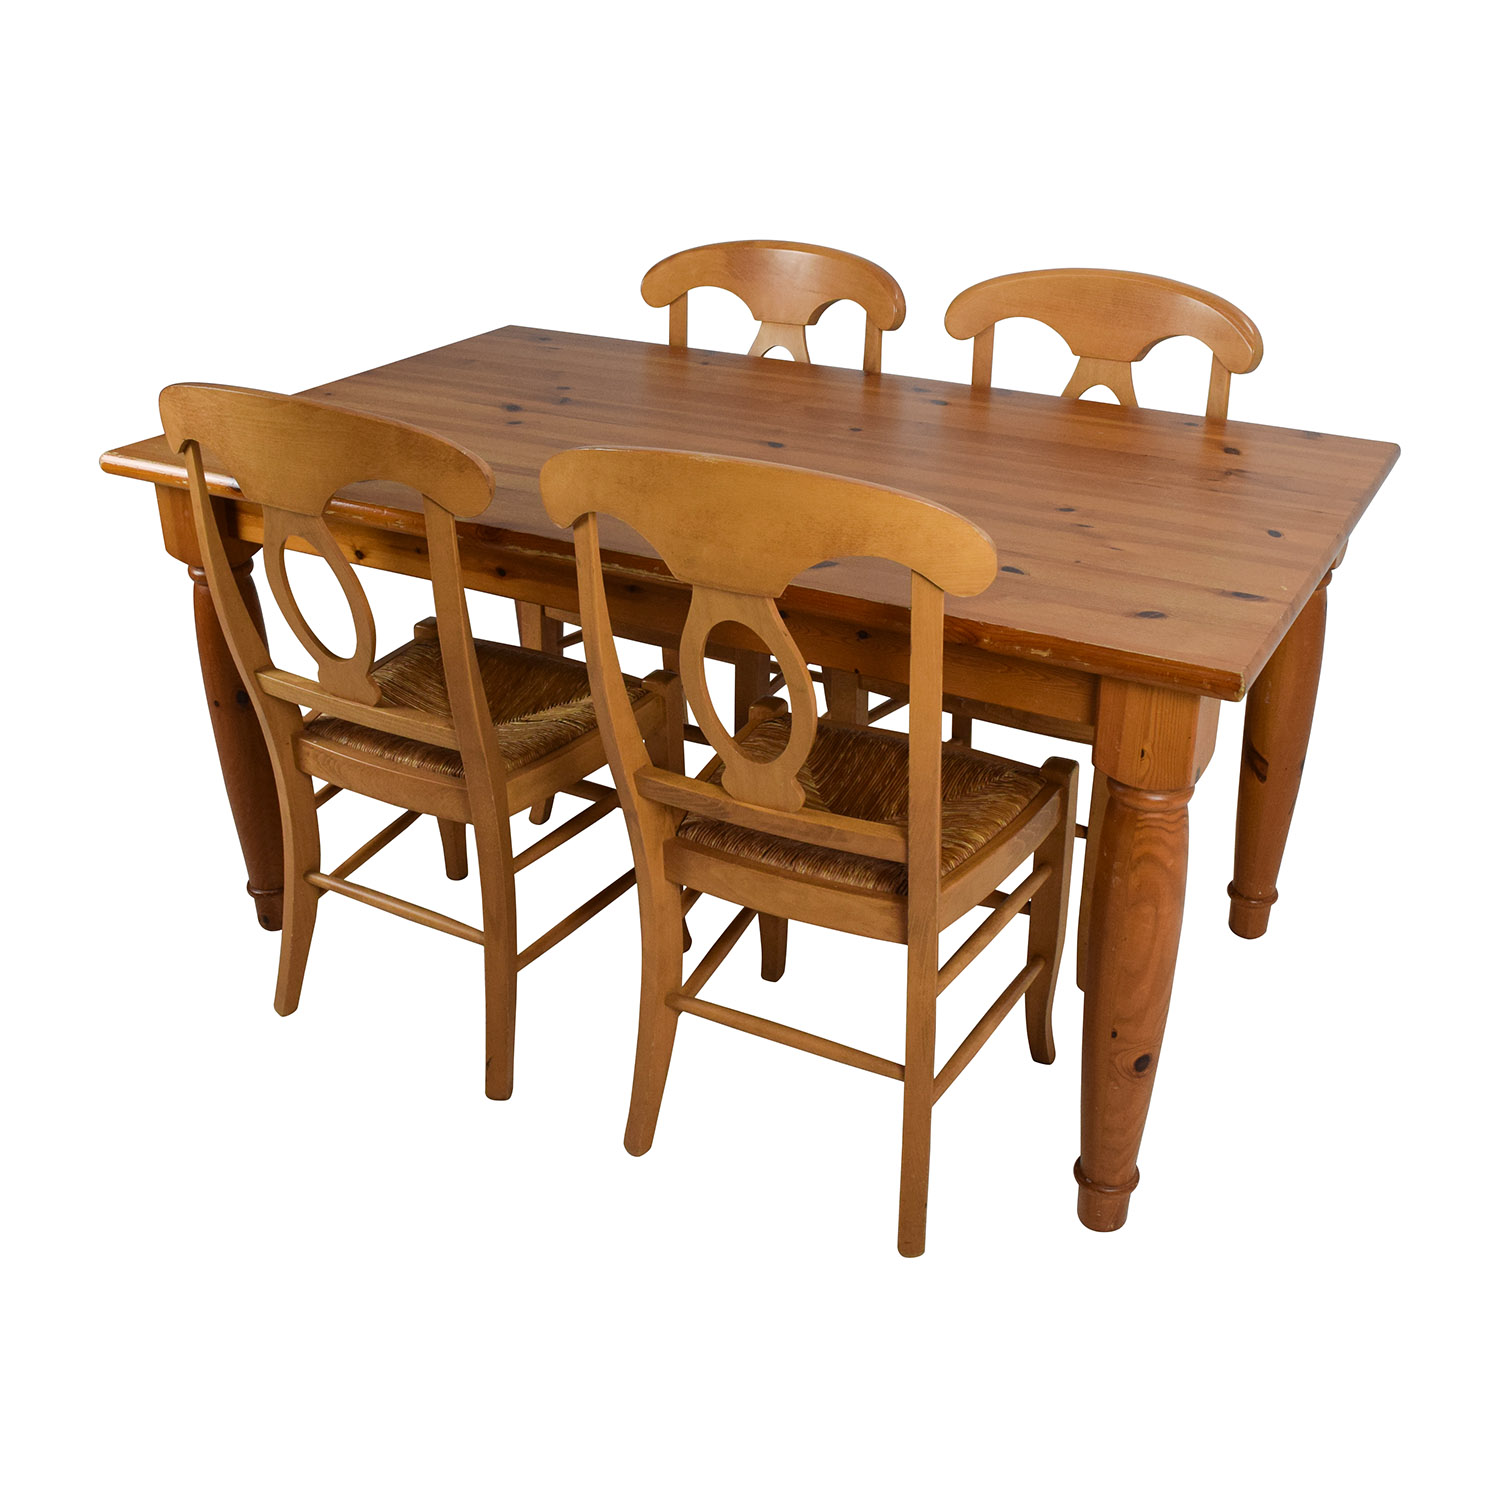 73% OFF   Pottery Barn Pottery Barn Dining Room Table With Four Chairs /  Tables